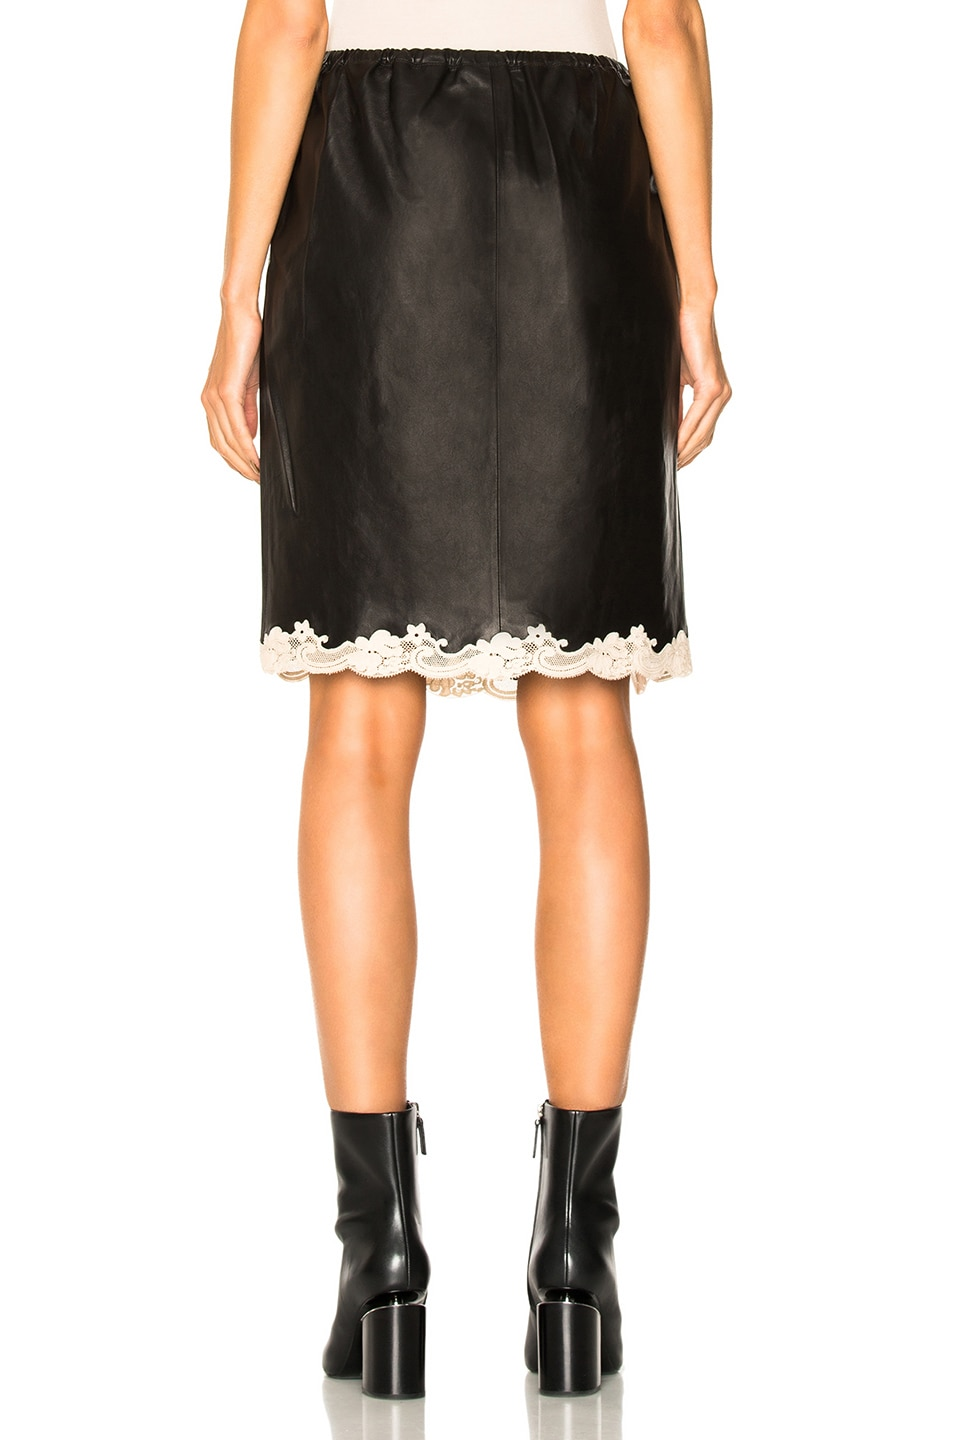 wang above the knee skirt with lace hem in black